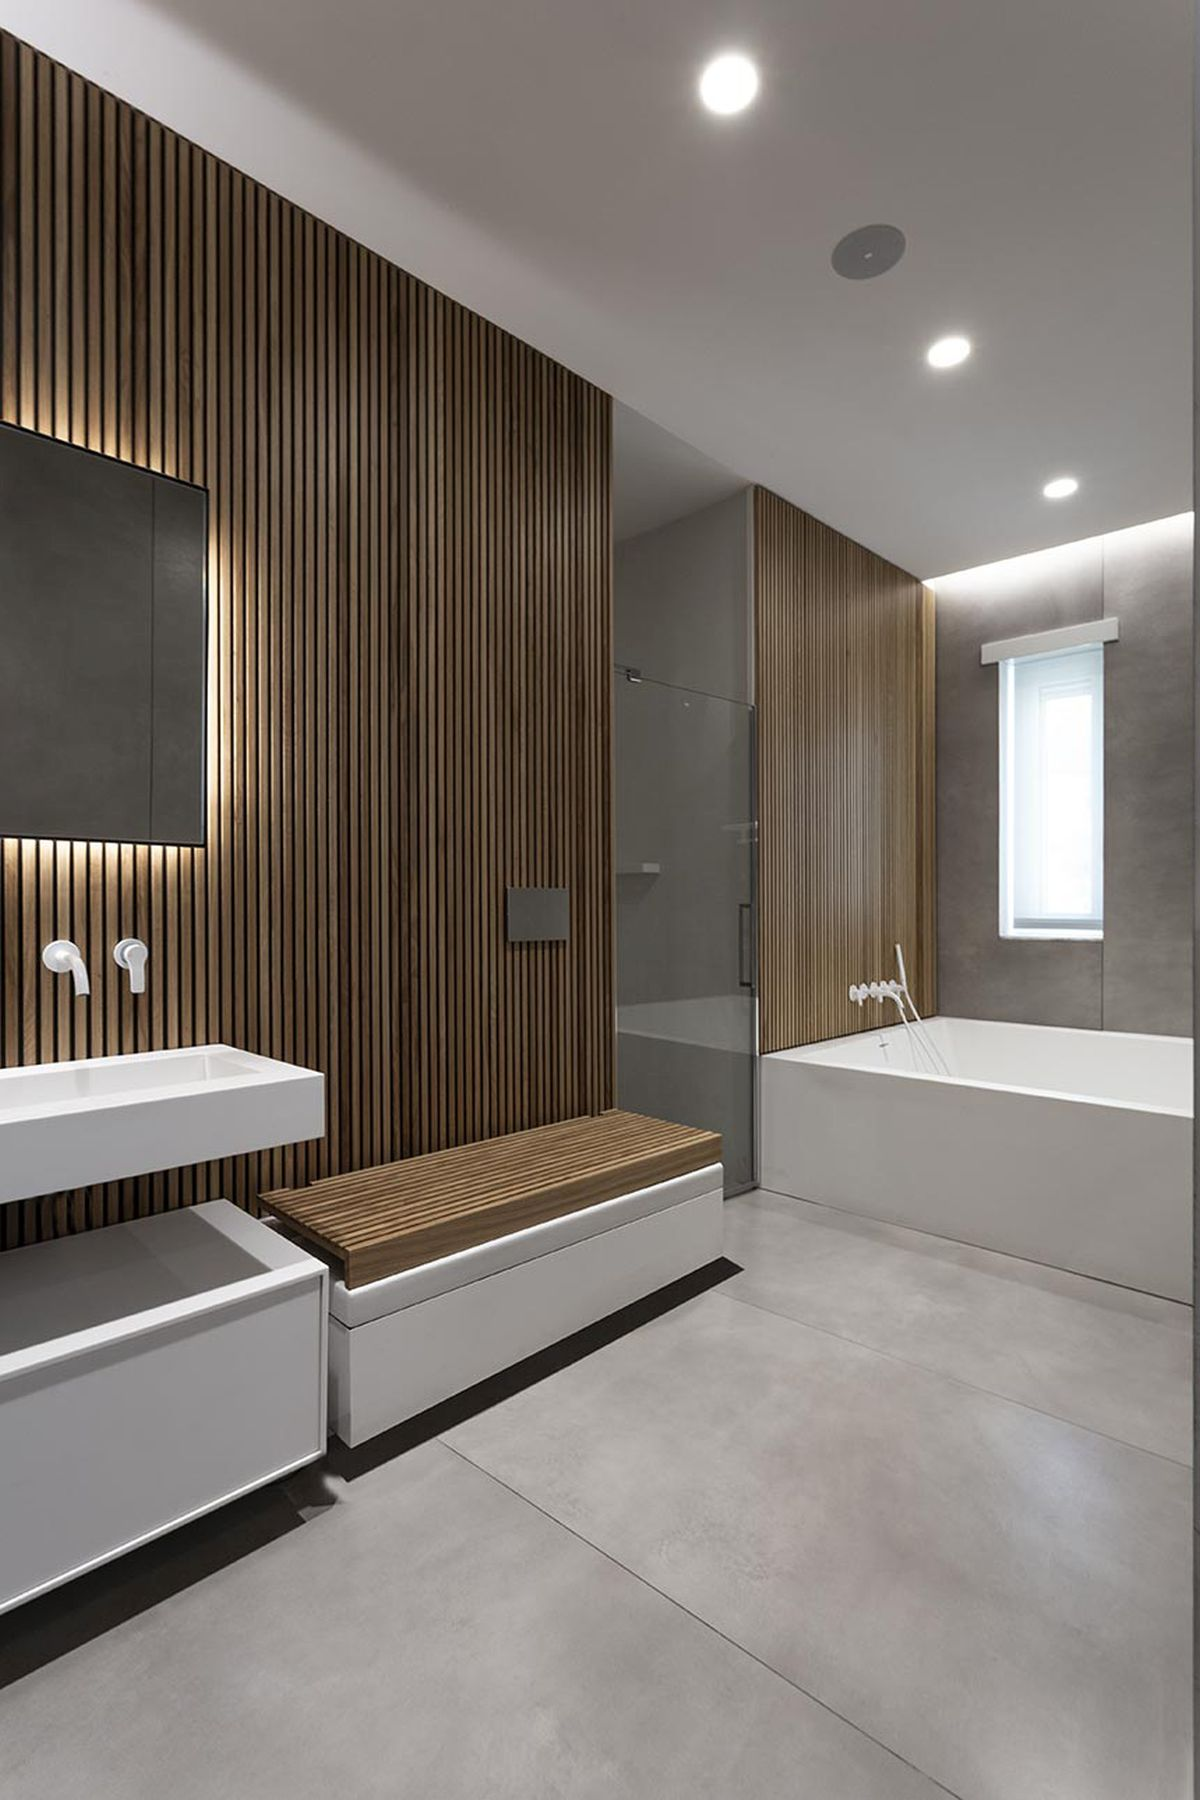 The wood accents and spacious layout give the bathroom a very welcoming and sophisticated look